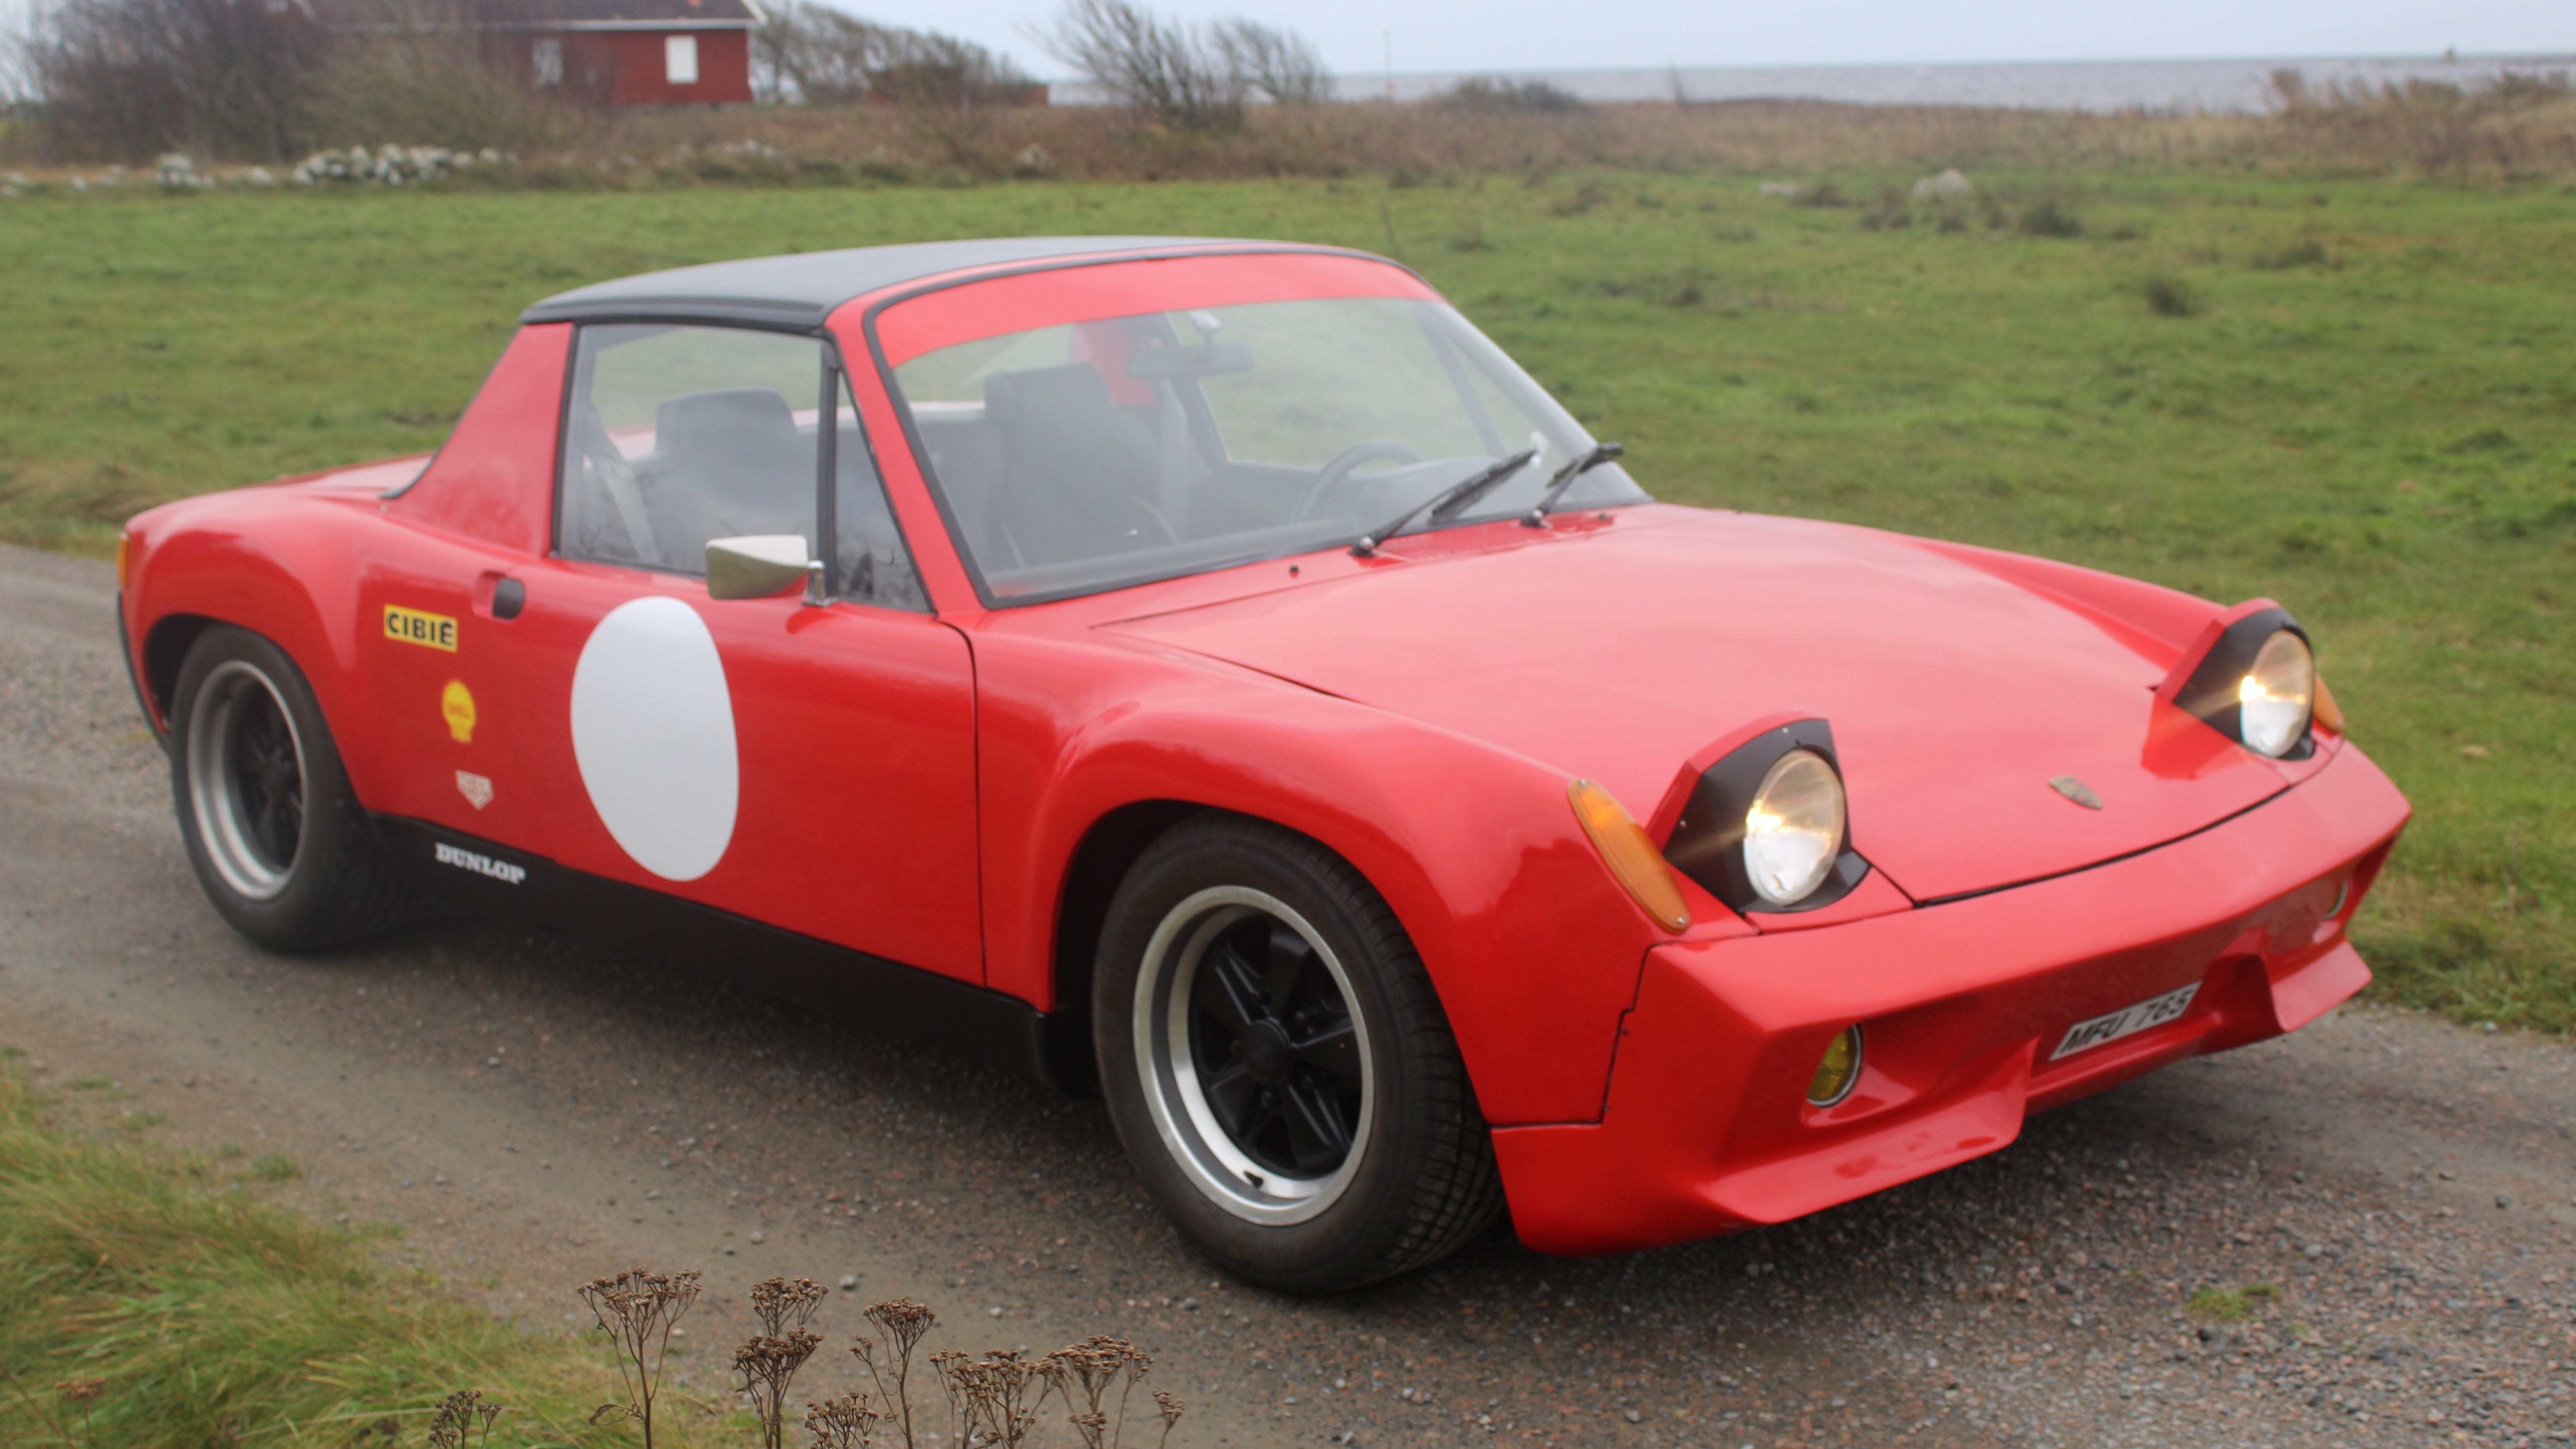 Porsche 916 Recreation1970 porsche 916 lampor fram